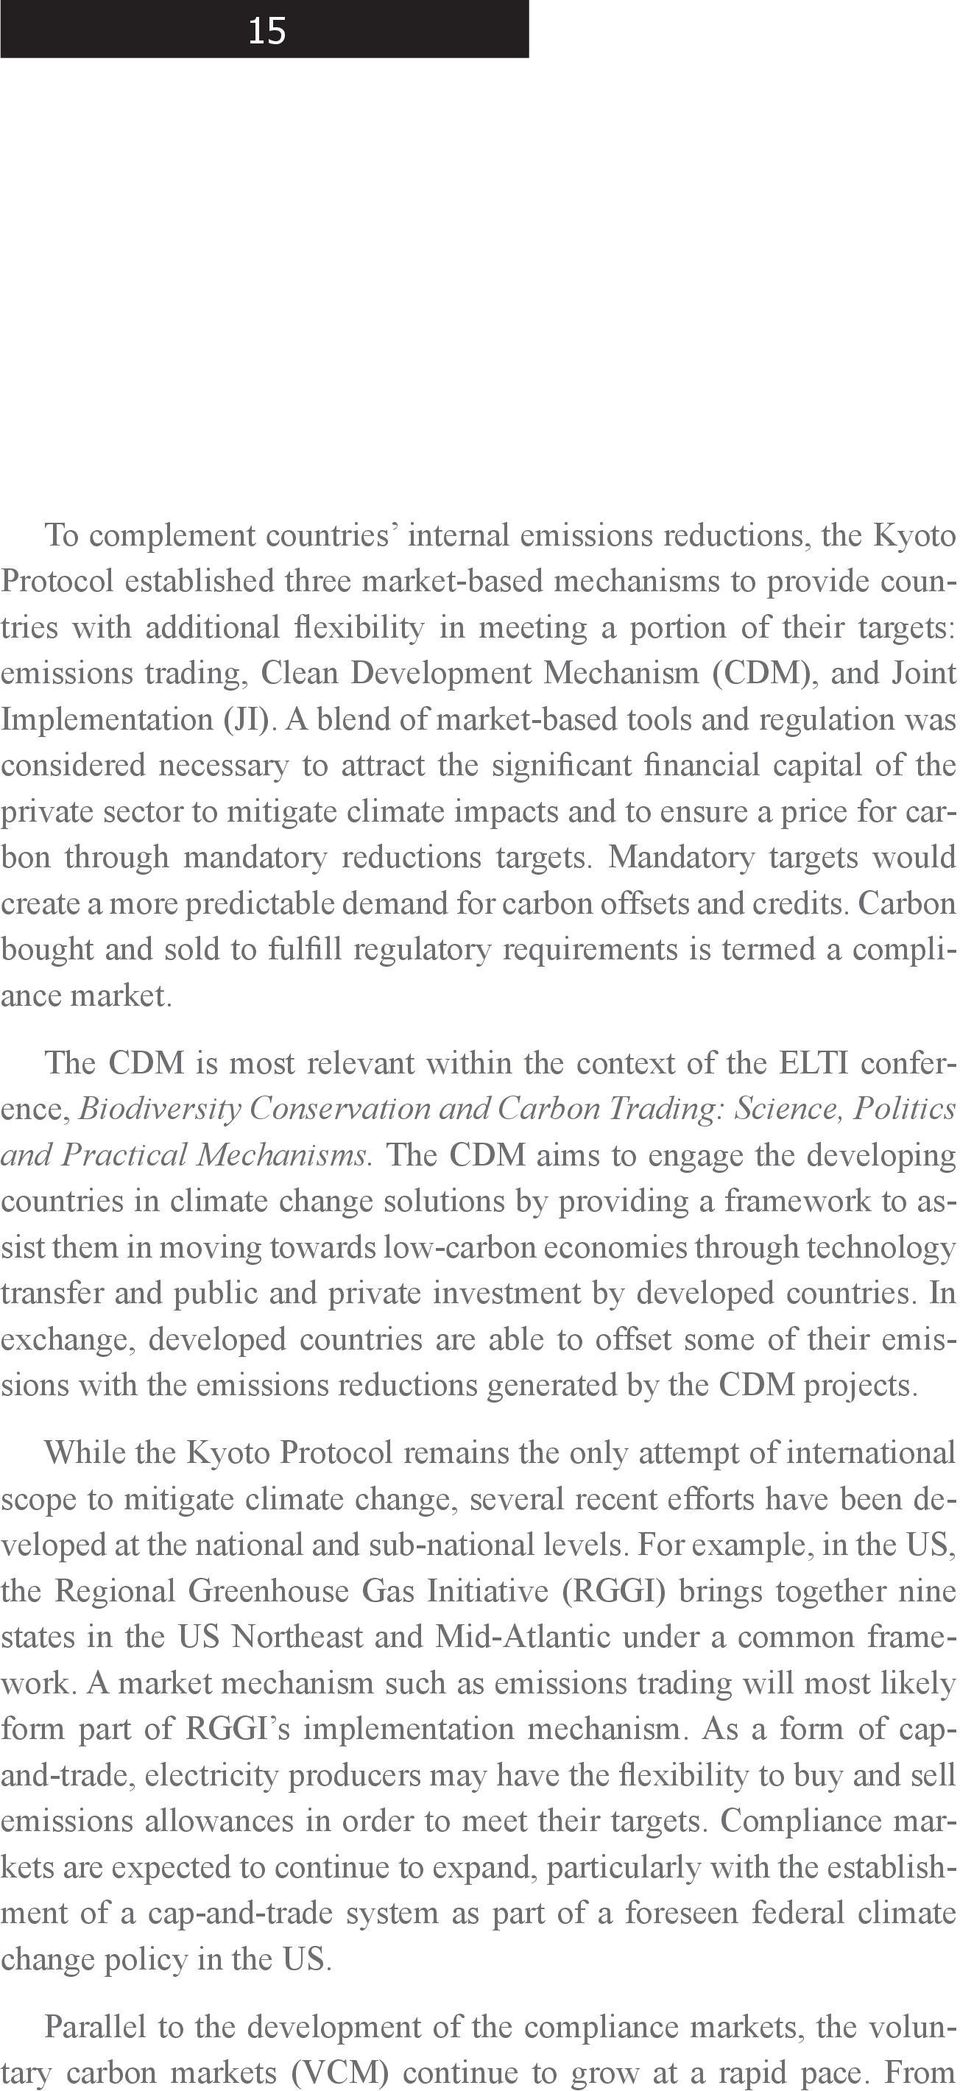 A blend of market-based tools and regulation was considered necessary to attract the significant financial capital of the private sector to mitigate climate impacts and to ensure a price for carbon